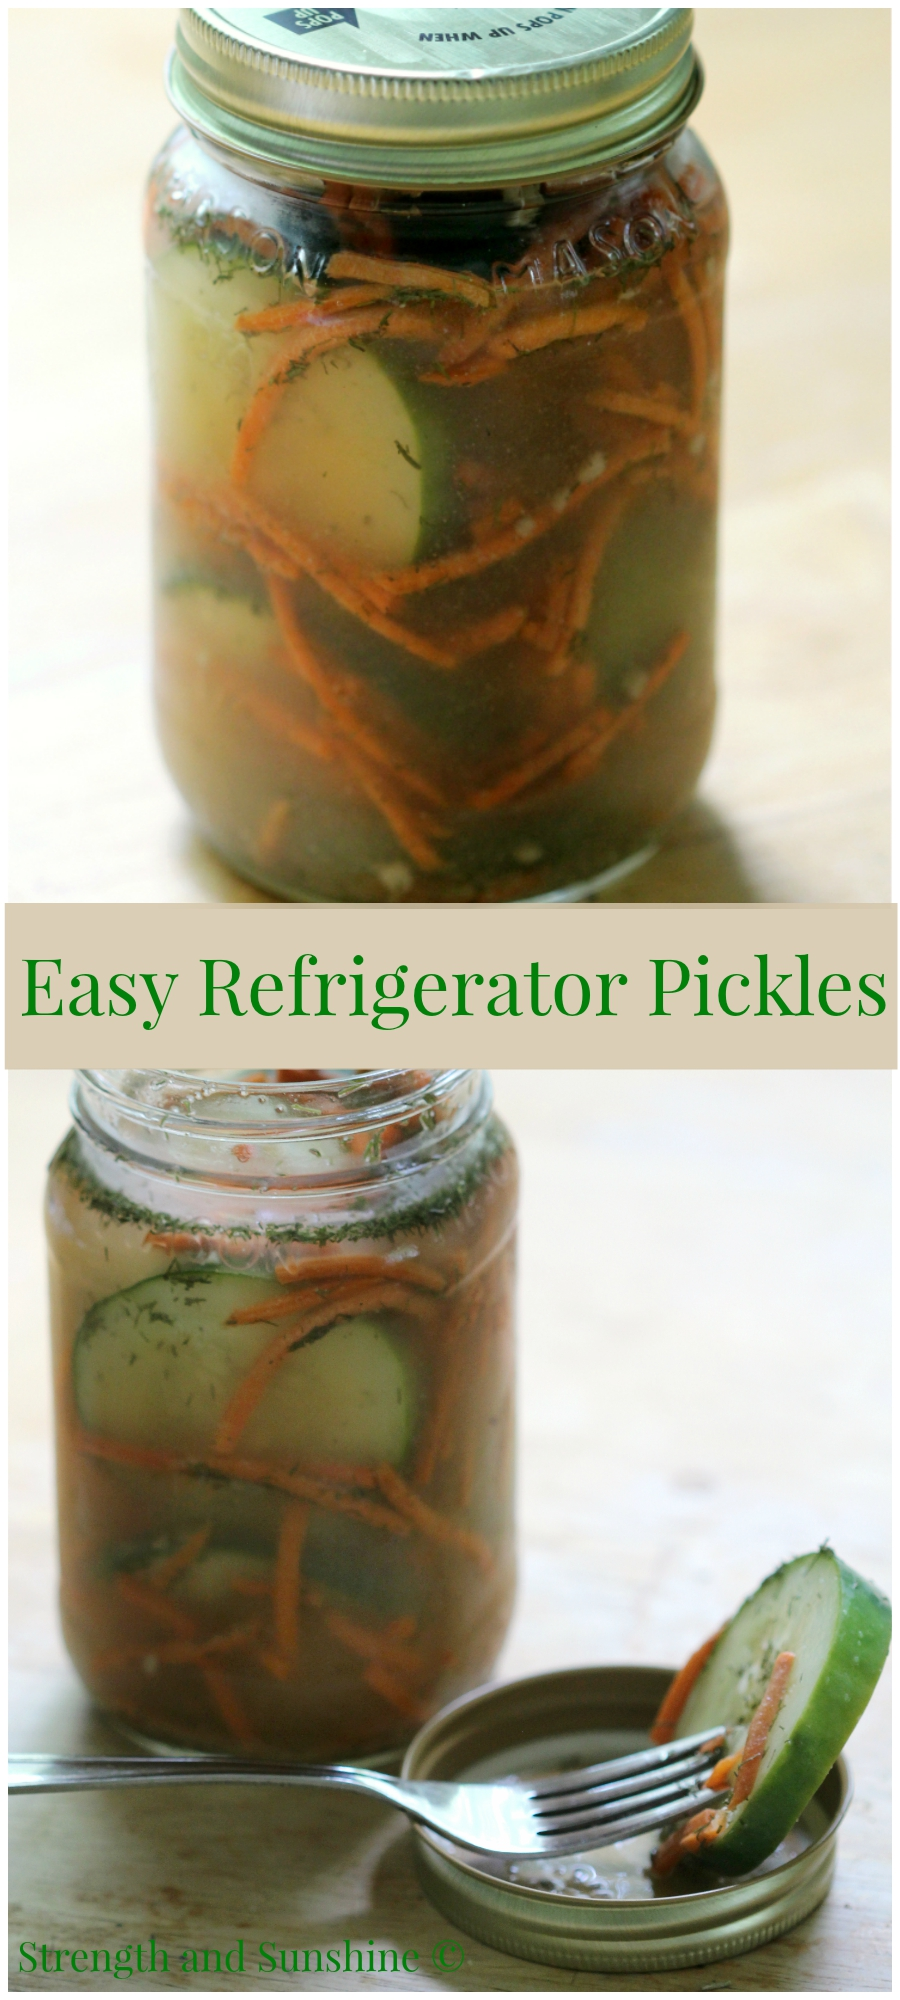 Easy Refrigerator Pickles | Strength and Sunshine @RebeccaGF666 Take the last of your summer cucumbers and make some easy refrigerator pickles. A quick way to take extra cucumbers from boring to totally snack worthy! Gluten-free, healthy, vegan, paleo, and allergy-friendly; even salt and sugar free!